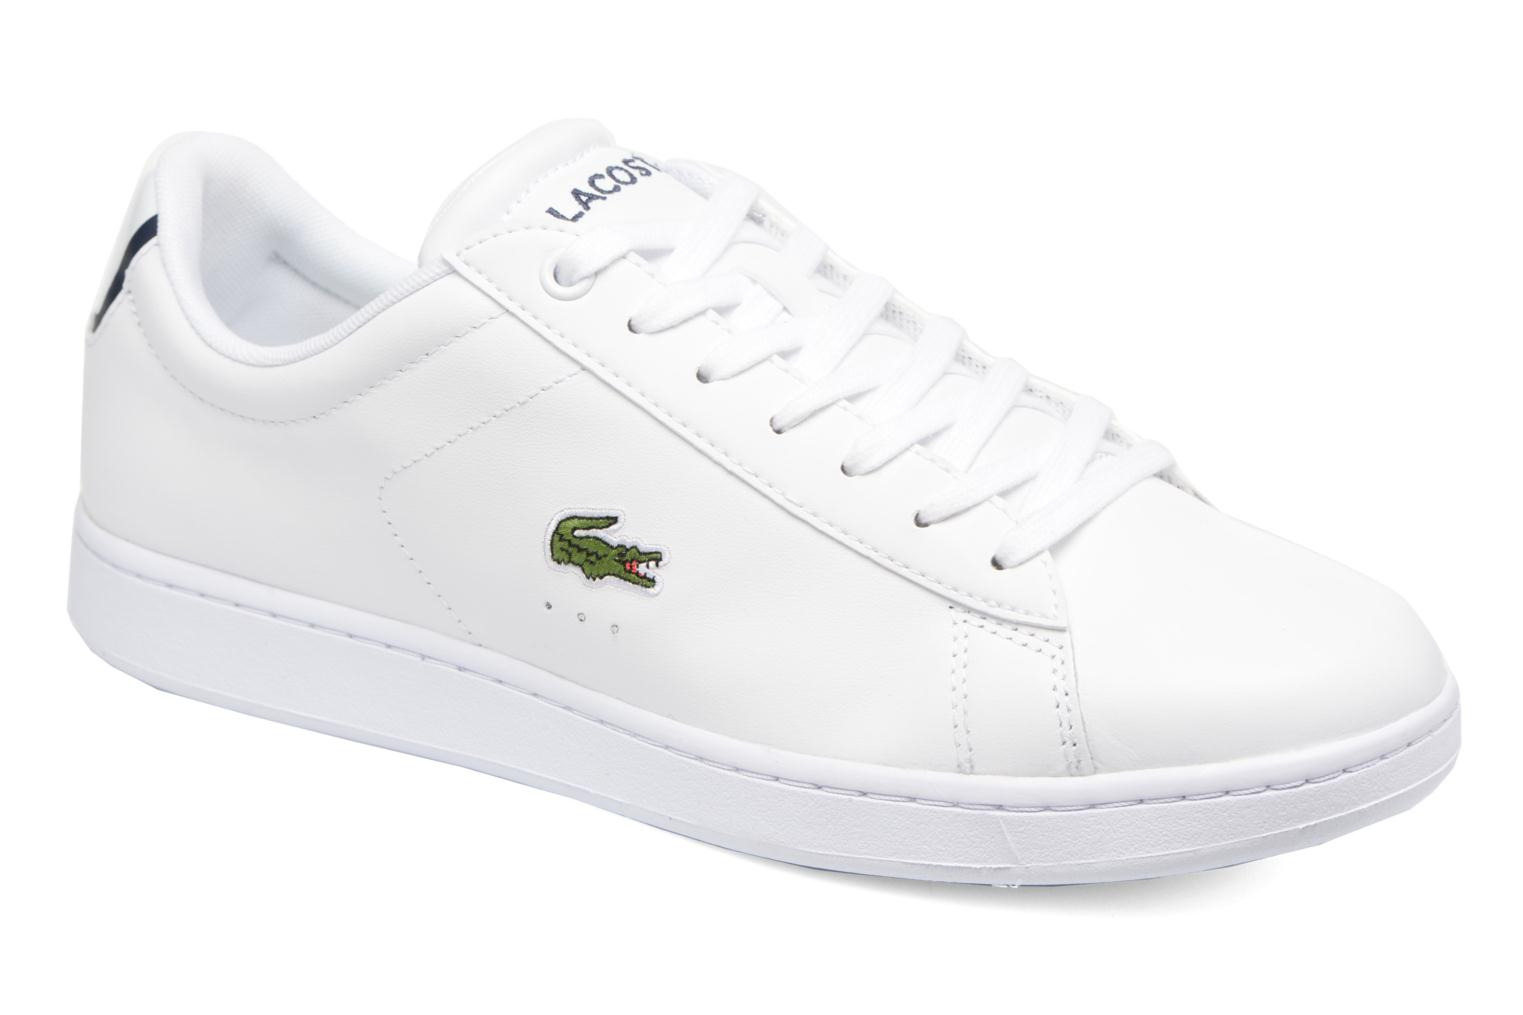 sneakers-carnaby-evo-bl-1-by-lacoste